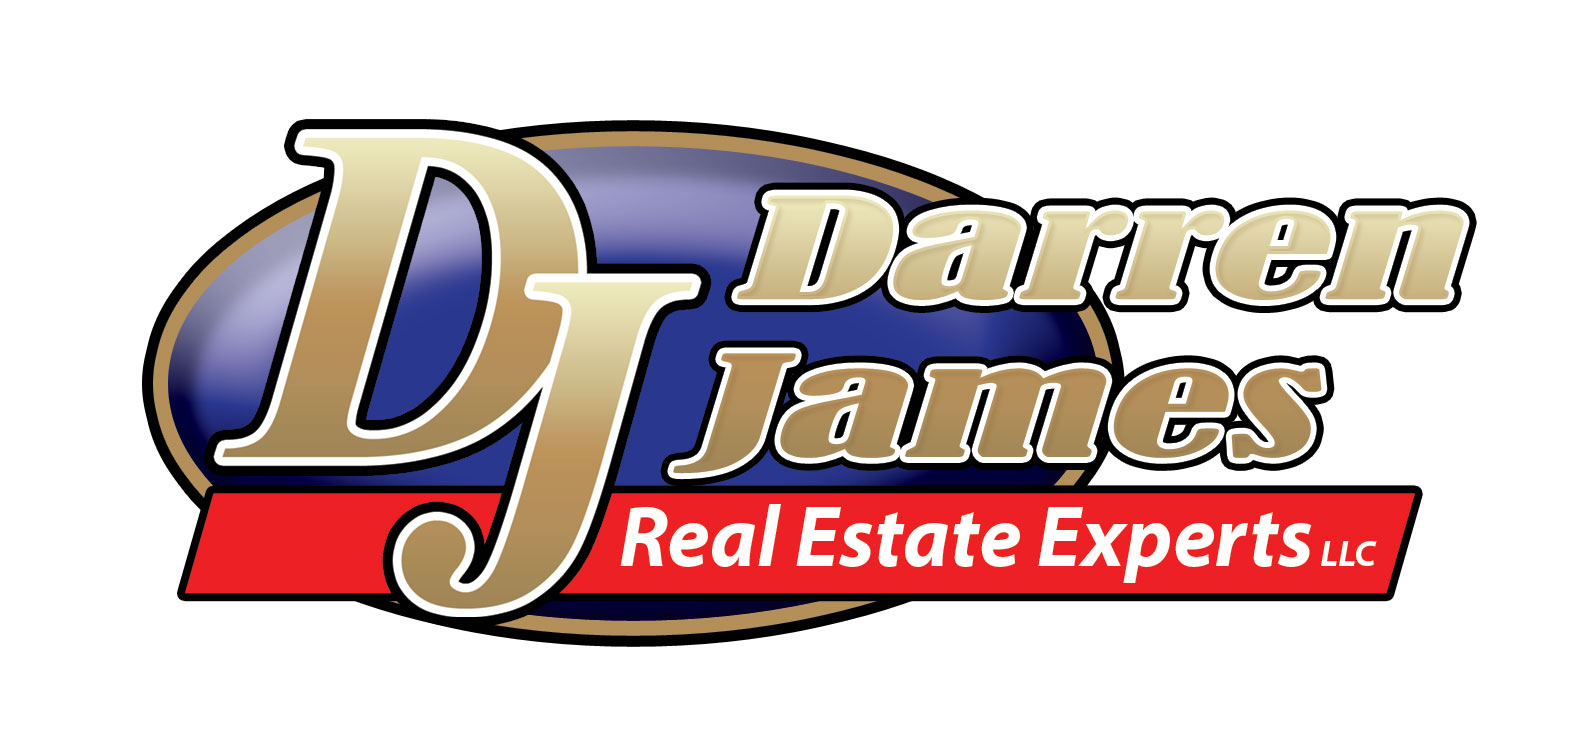 Darren James Real Estate Experts, LLC - Denham Springs, LA -